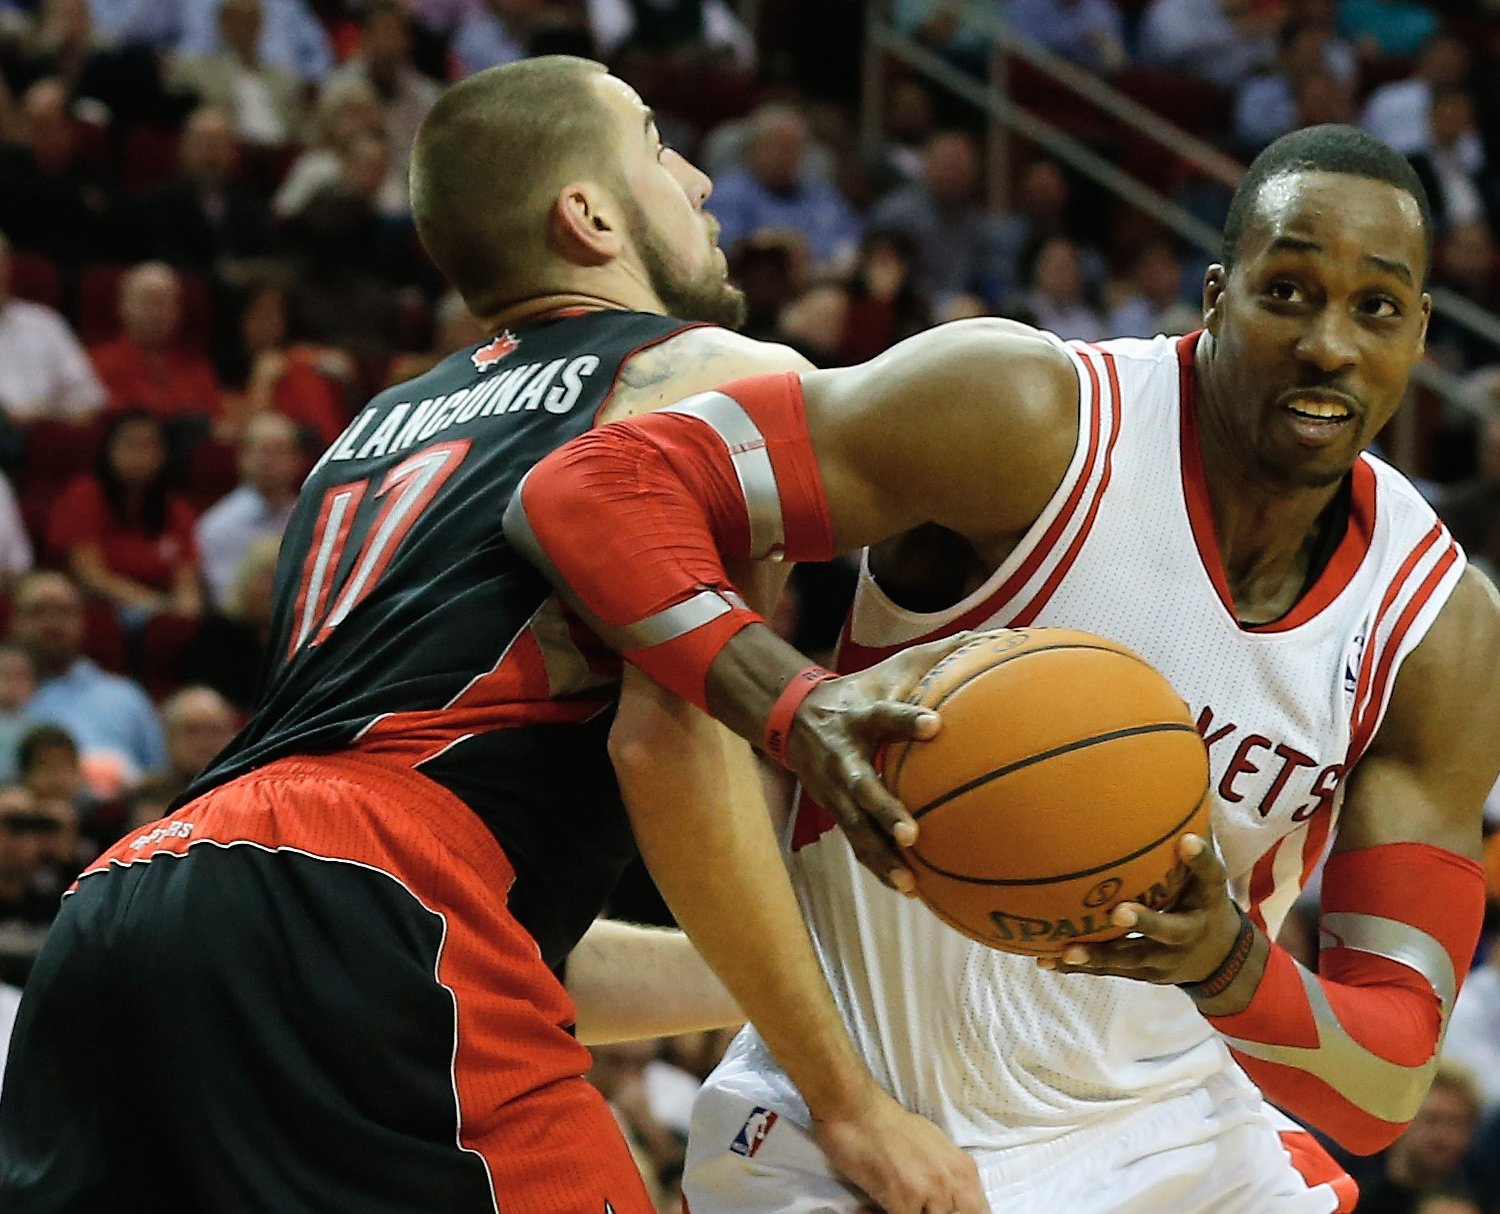 hi-res-187697206-dwight-howard-of-the-houston-rockets-drives-against_crop_exact